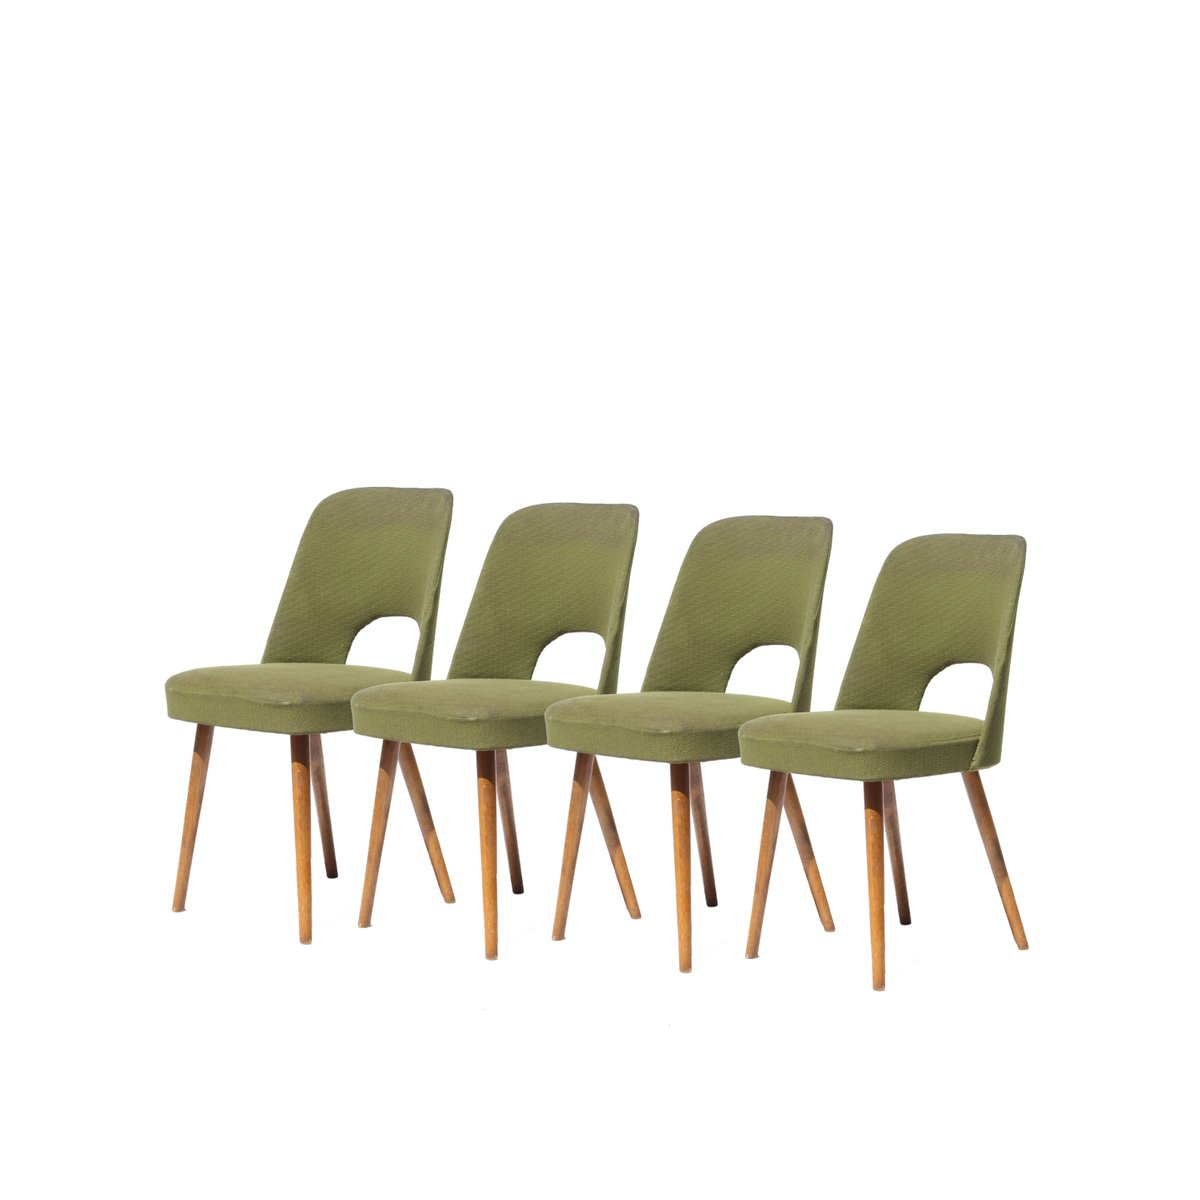 midcentury czech green dining chairs s set of  for sale at  - midcentury czech green dining chairs s set of